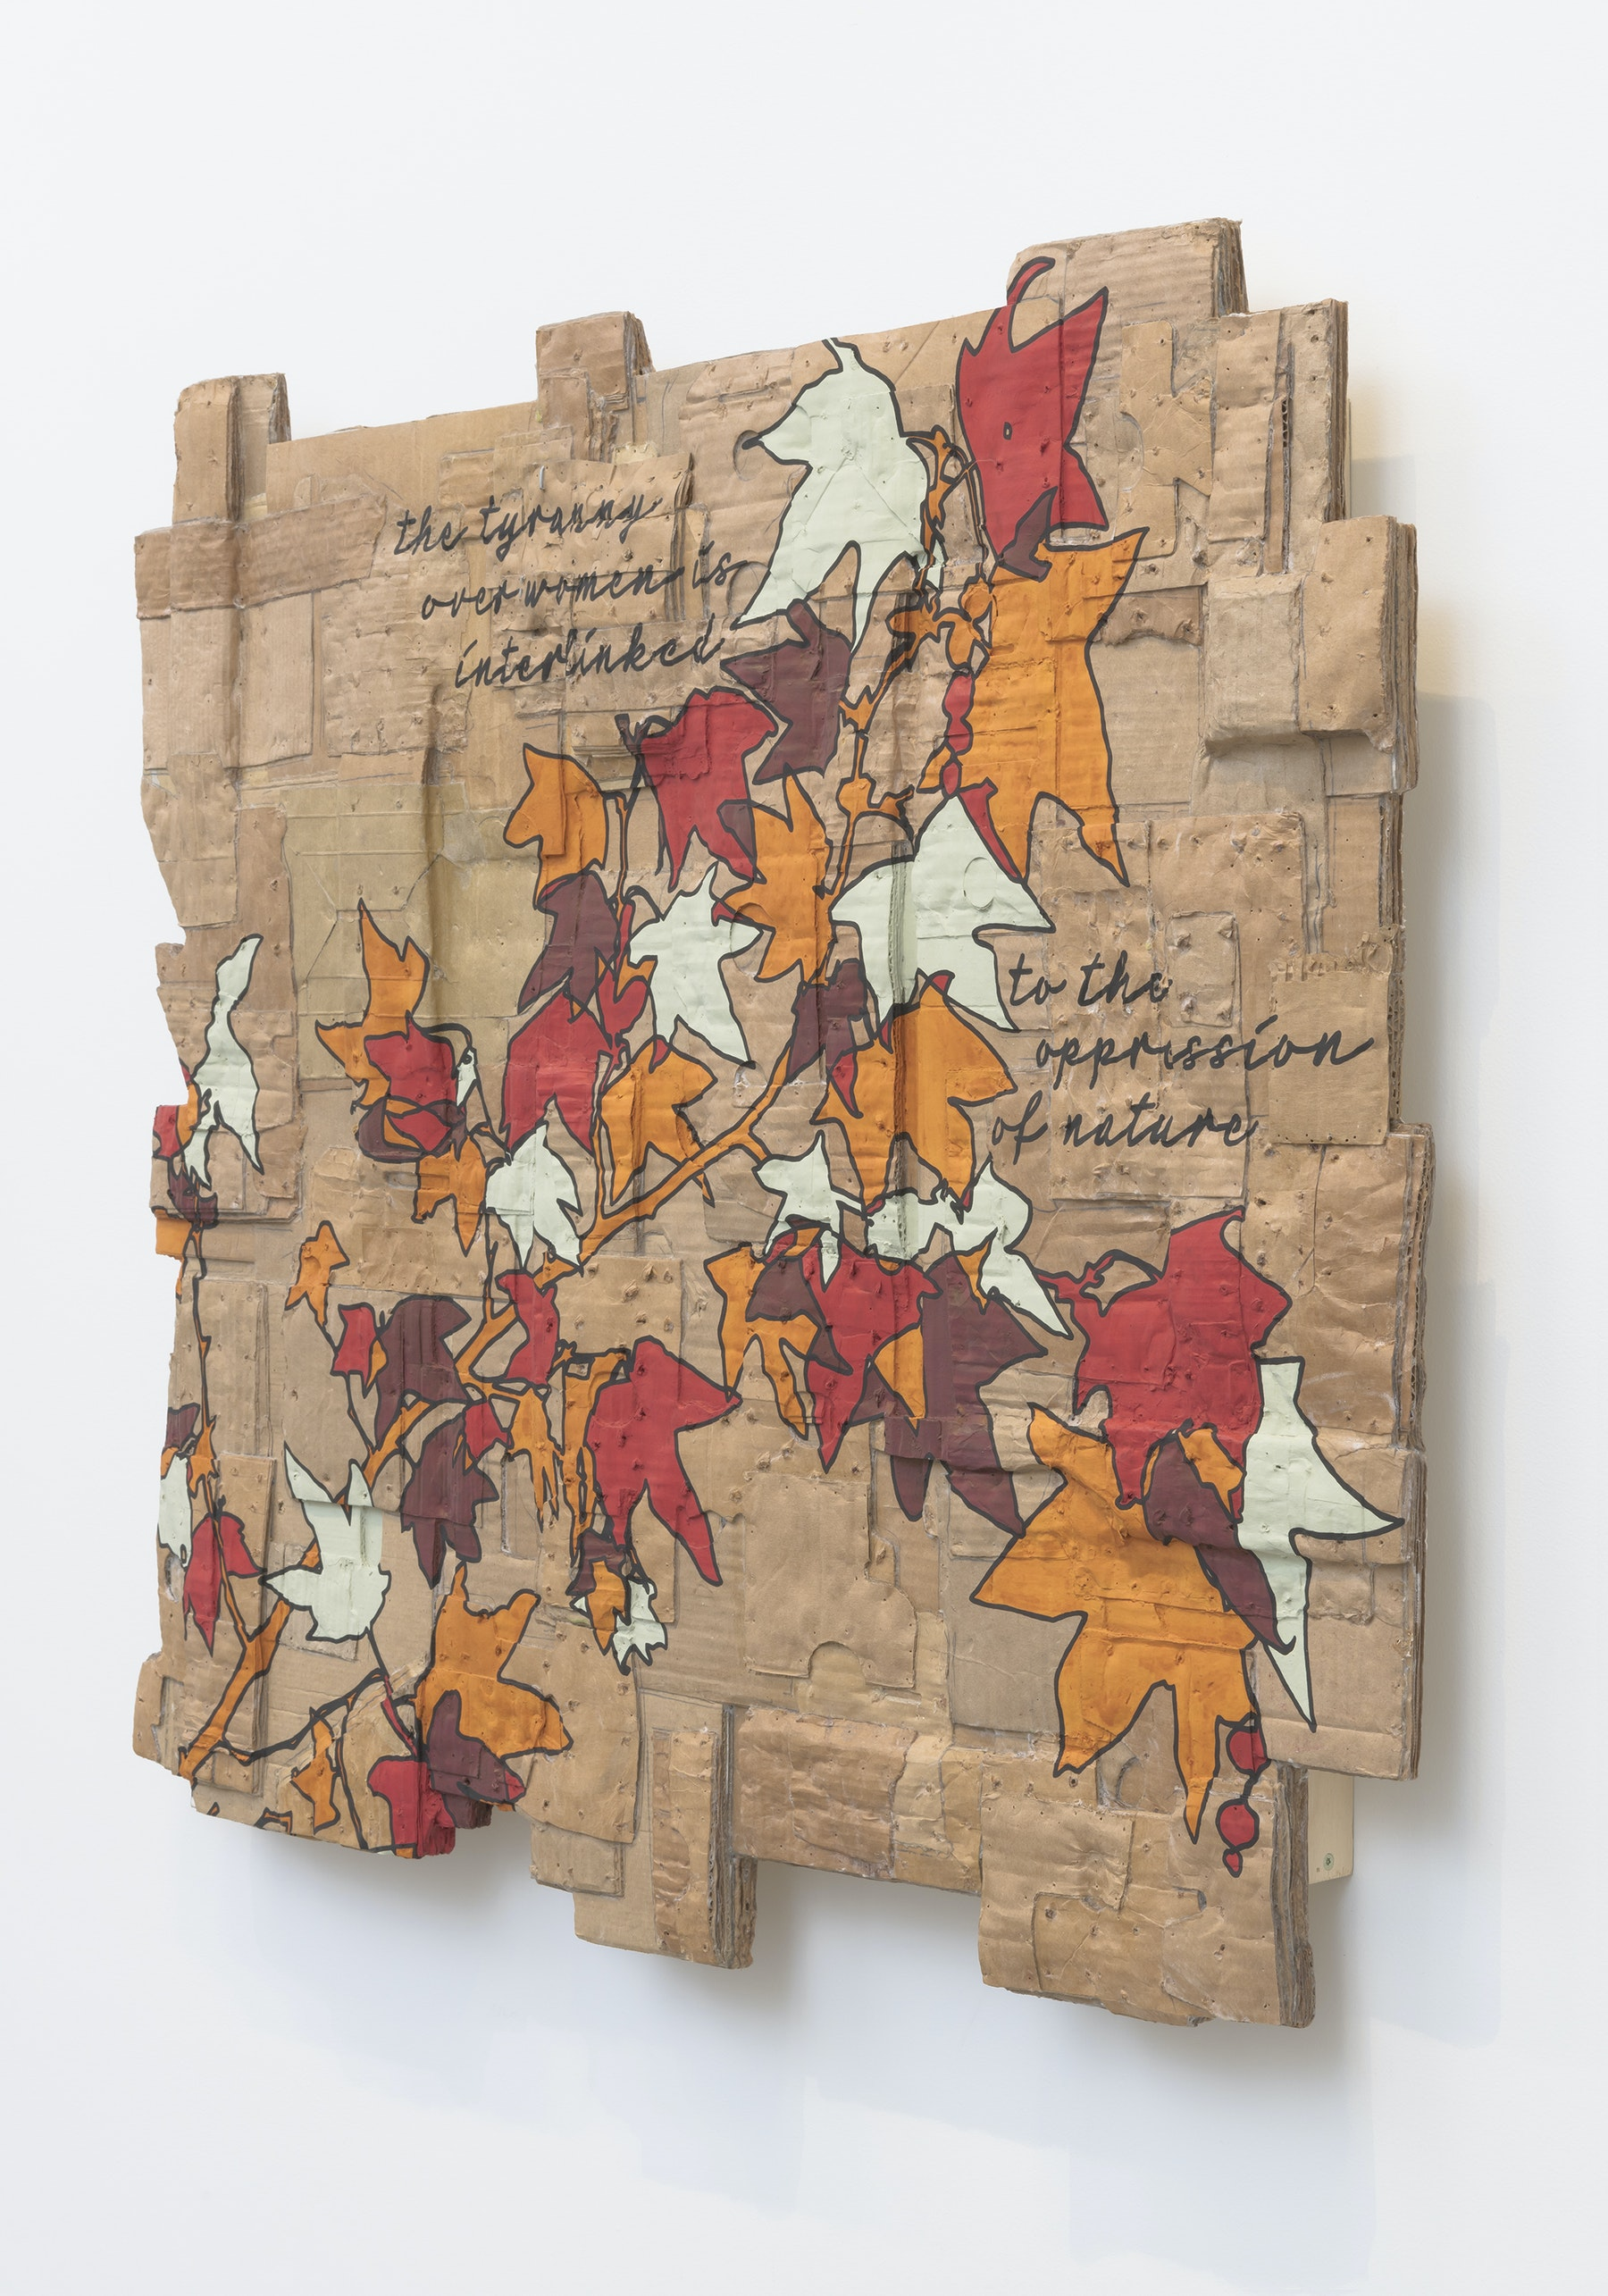 """Andrea Bowers """"The Tyranny Over Women Is Interlinked to the Oppression of Nature (Ecofeminist Sycamore Branch Series),"""" 2020 Archival Marker on Cardboard 34.25 x 41 x 3"""" [HxWxD] (87 x 104.14 x 7.62 cm) Inventory #BOW556 Courtesy of the Artist and Vielmetter Los Angeles Photo credit: Robert Wedemeyer"""